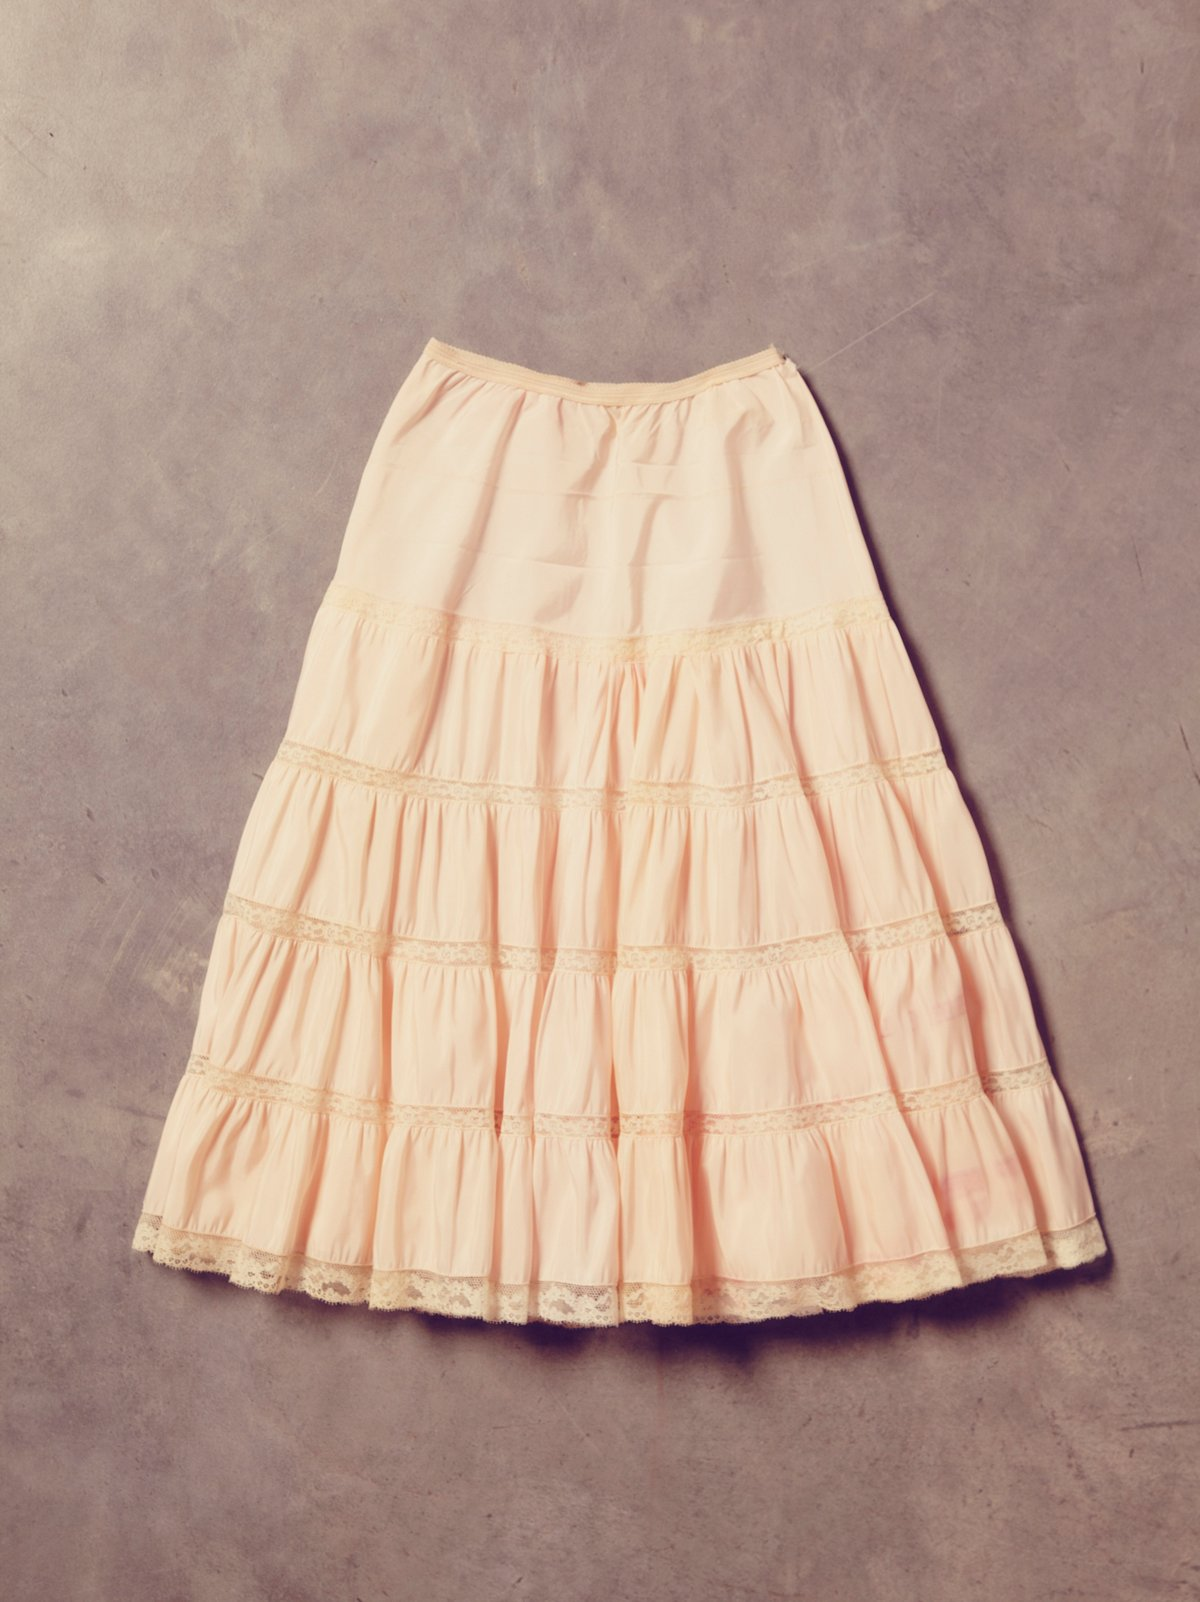 Vintage 1970s Skirt With Lace